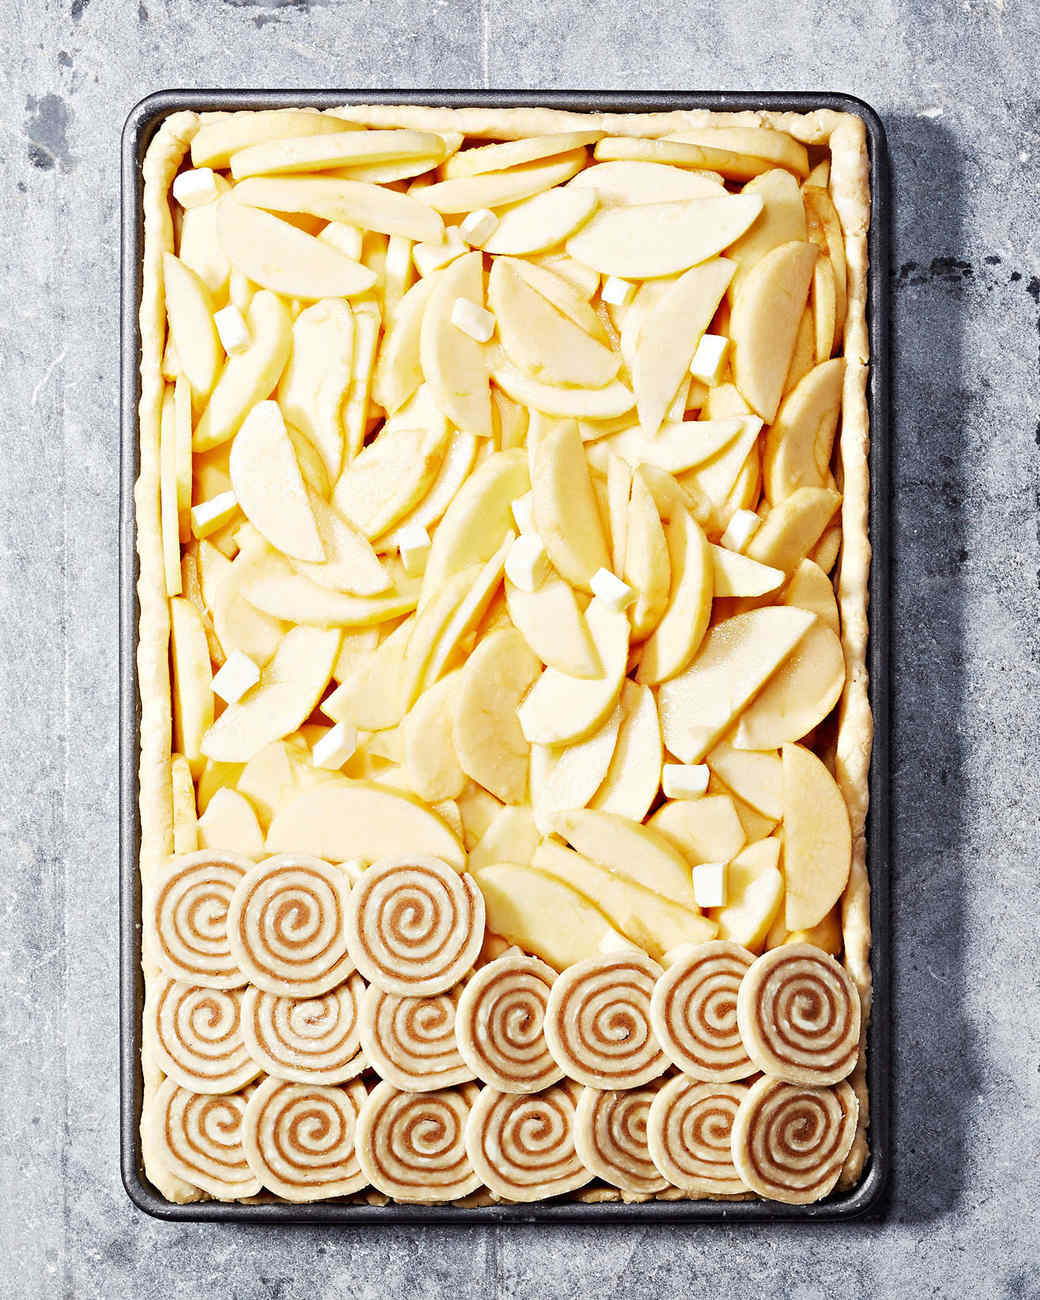 Cinnamon-Swirl Apple Slab Pie